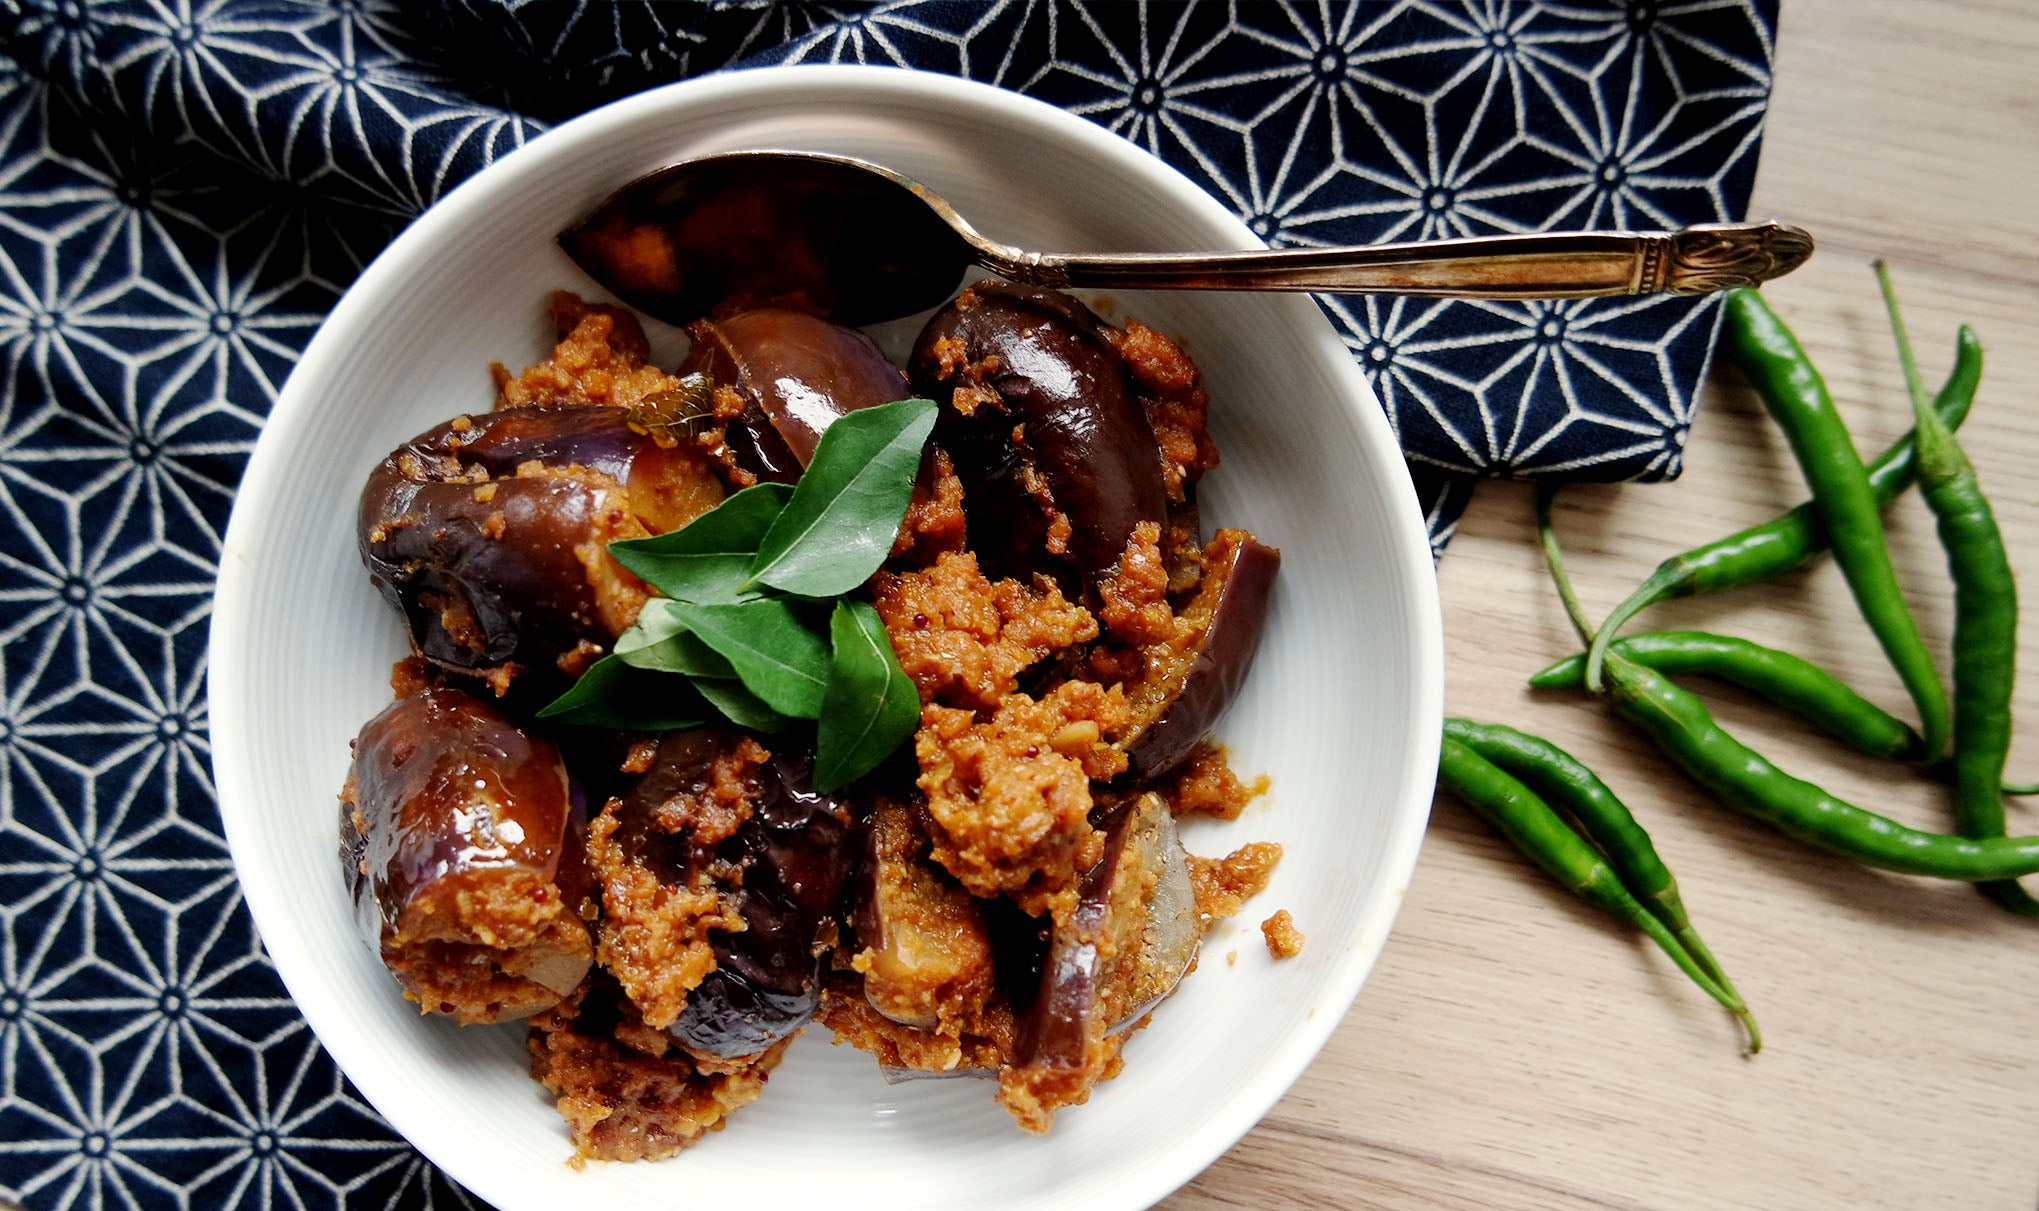 auberginesStuffed with spices in an Indian vegetarian recipe in a white ceramic bowl on a Japanese-patterned fabric